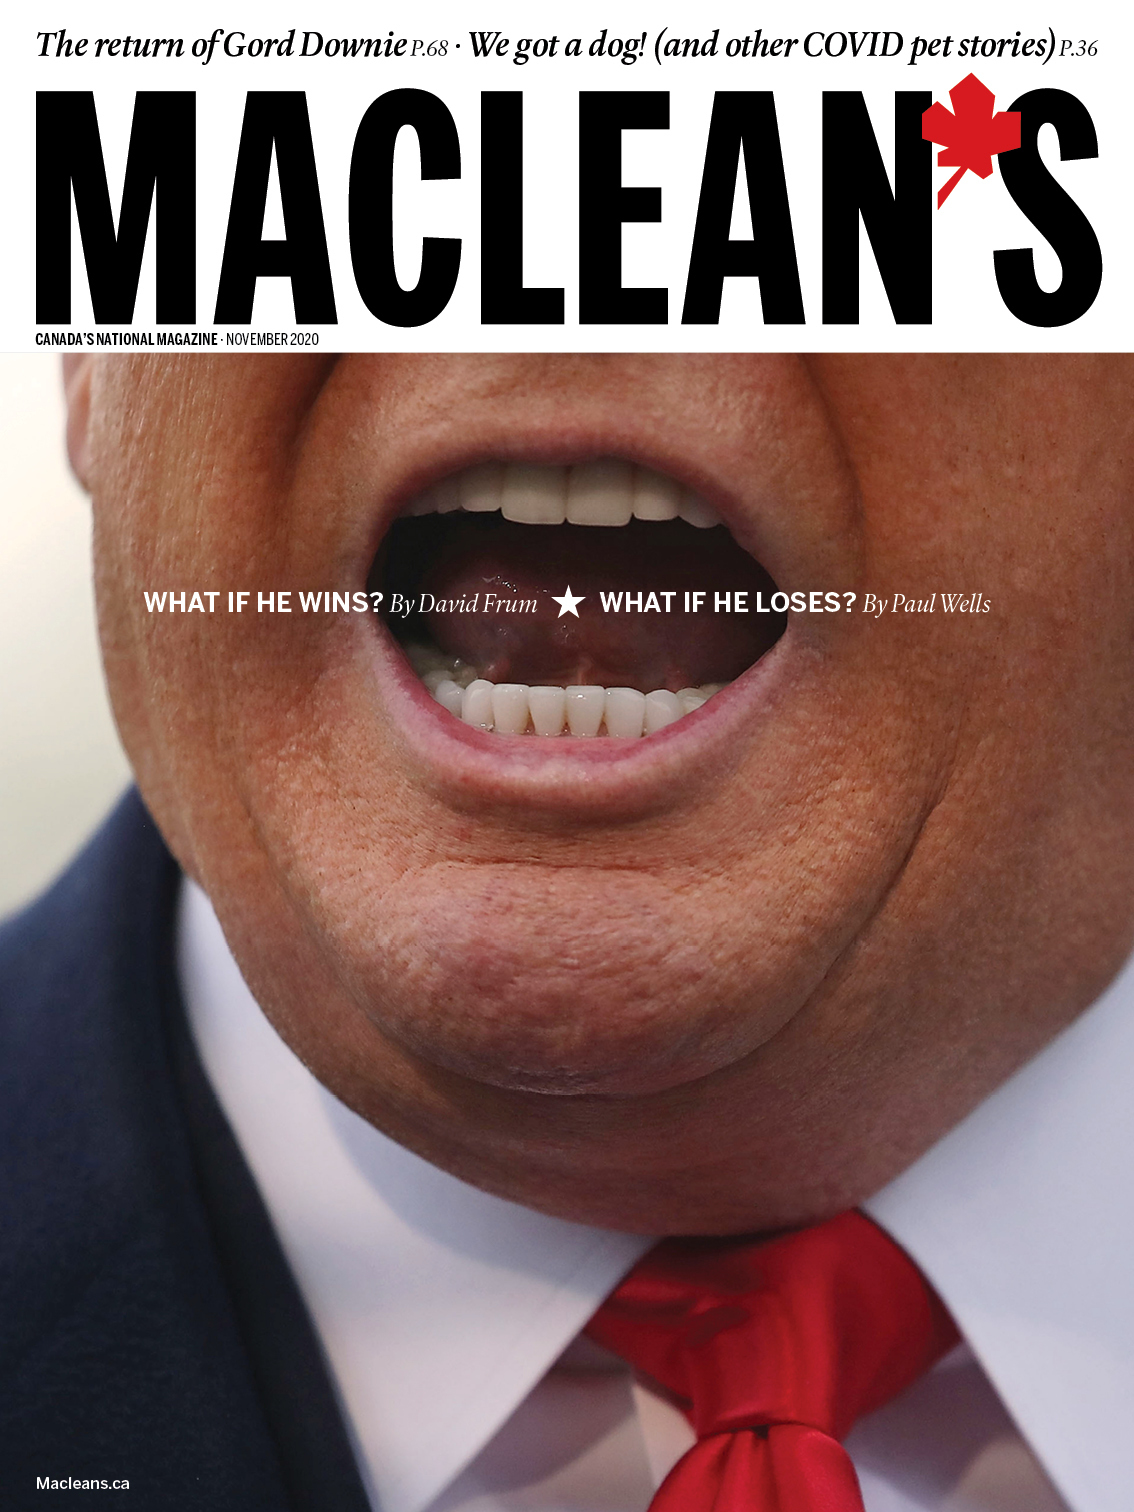 The November 2020 cover of Maclean's